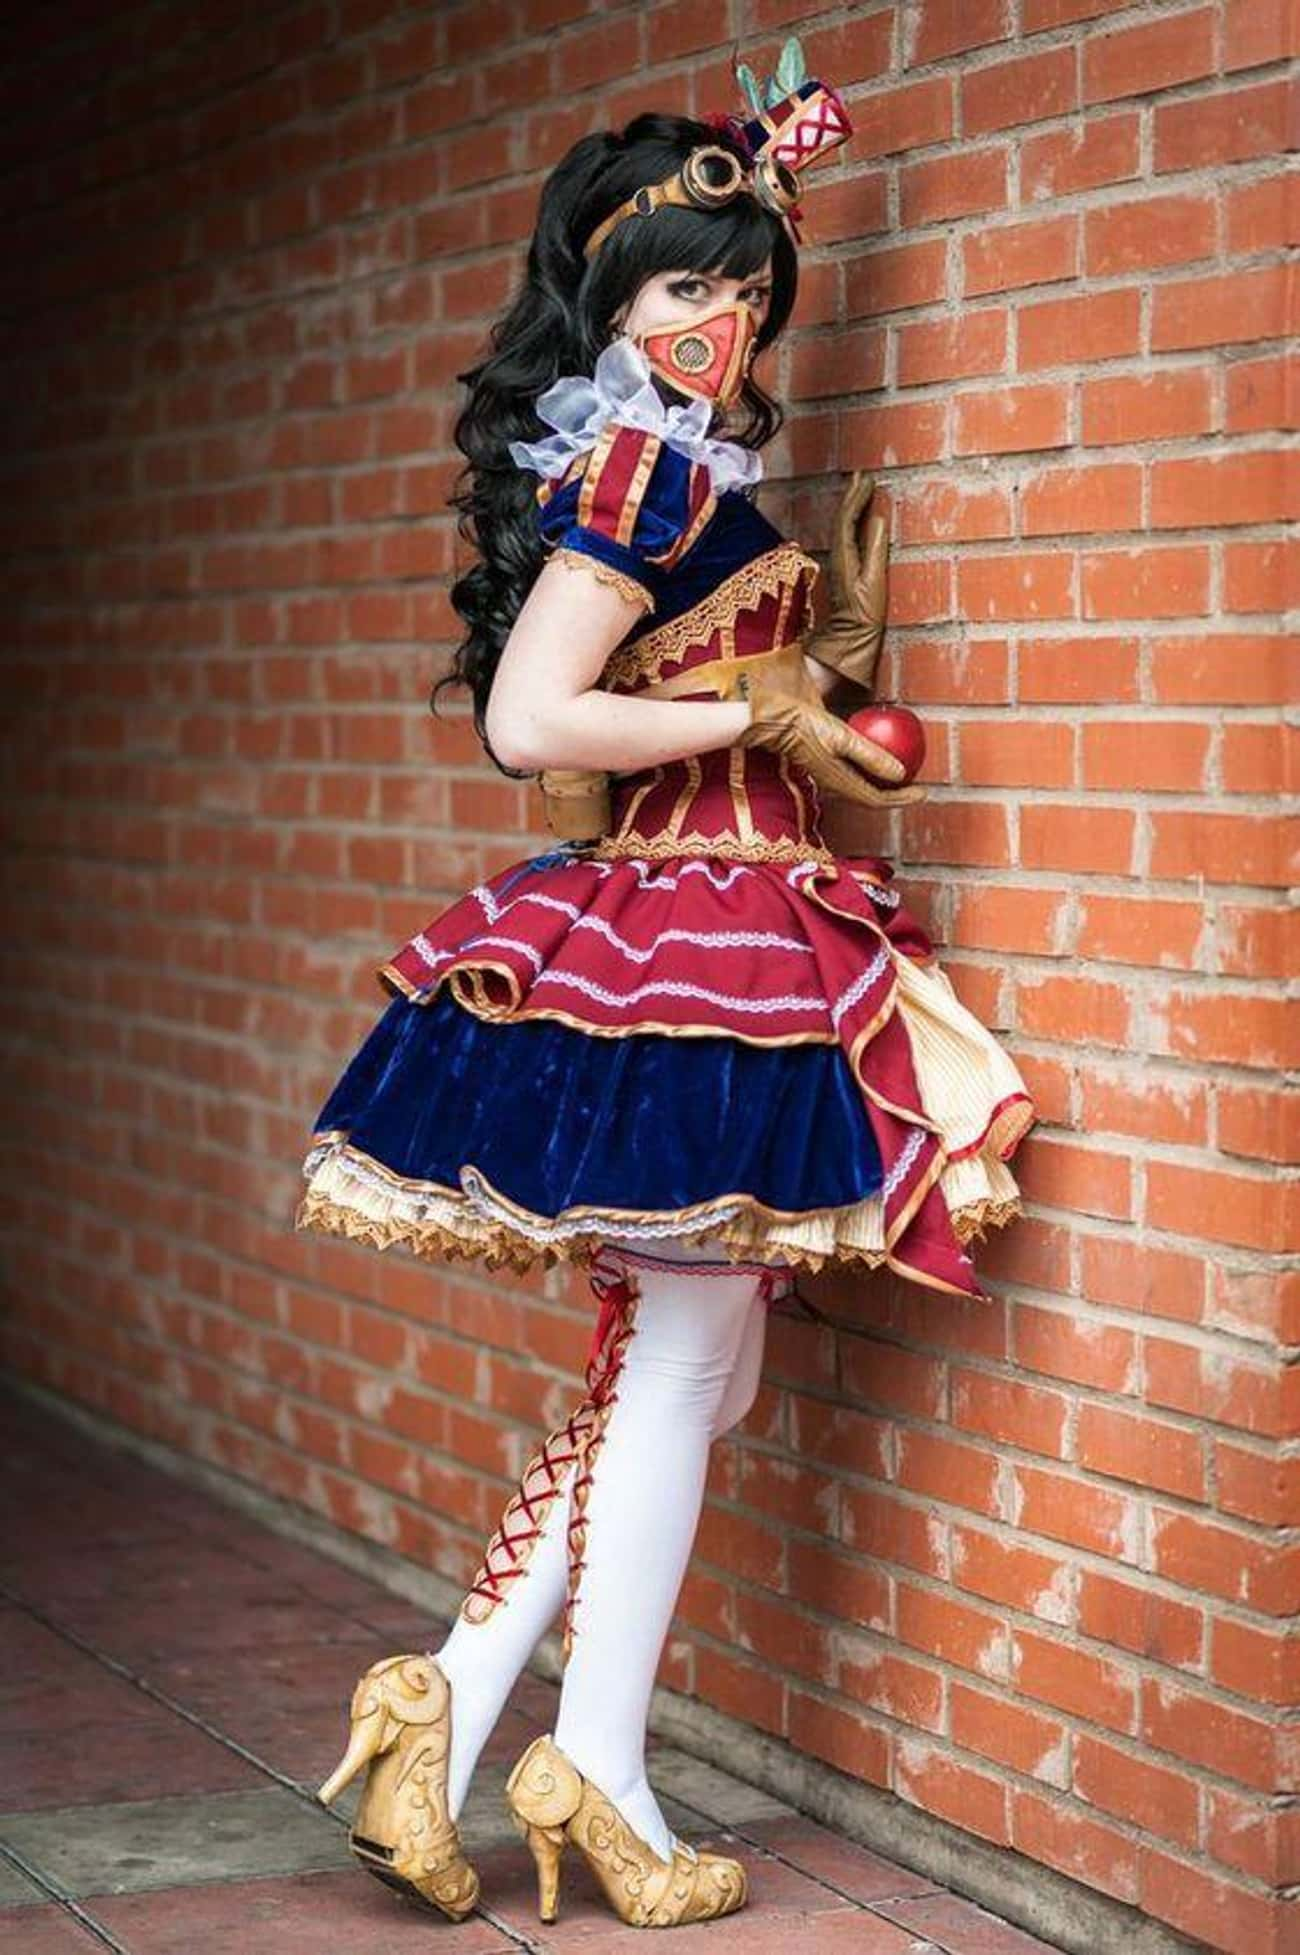 Snow White is listed (or ranked) 3 on the list 25 Epic Steampunk Versions Of Your Favorite Characters